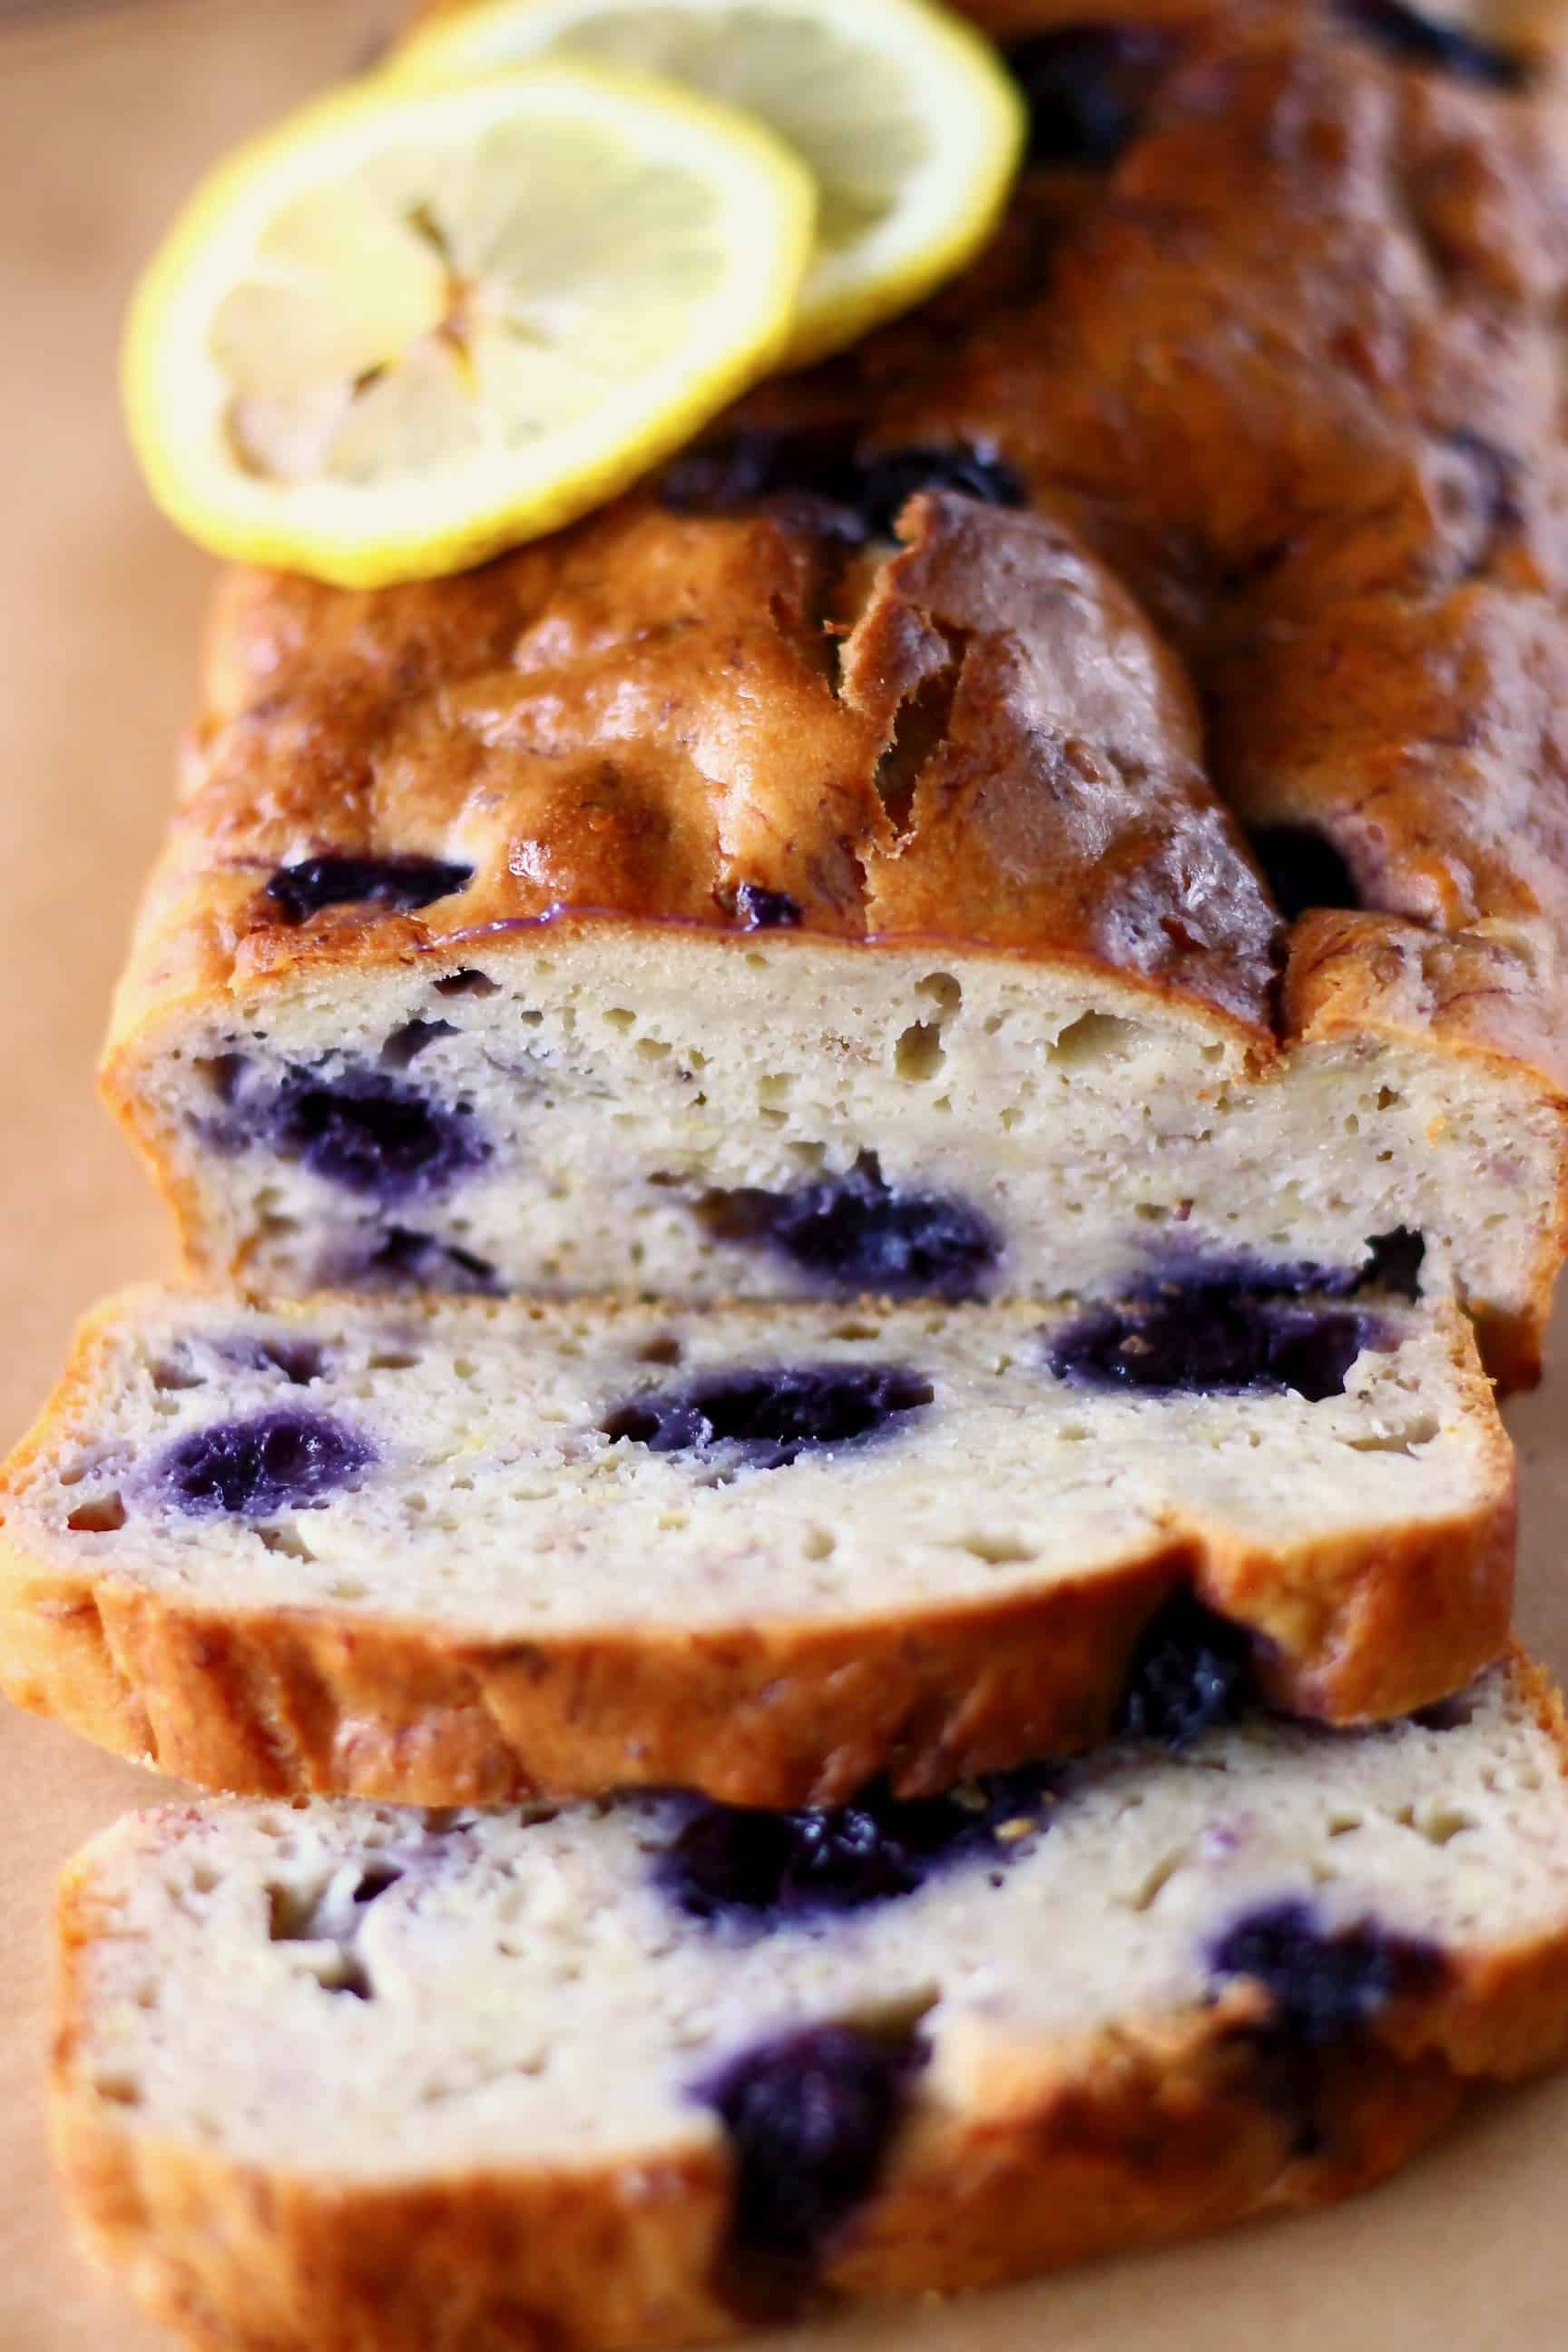 Lemon blueberry yogurt cake with two slices